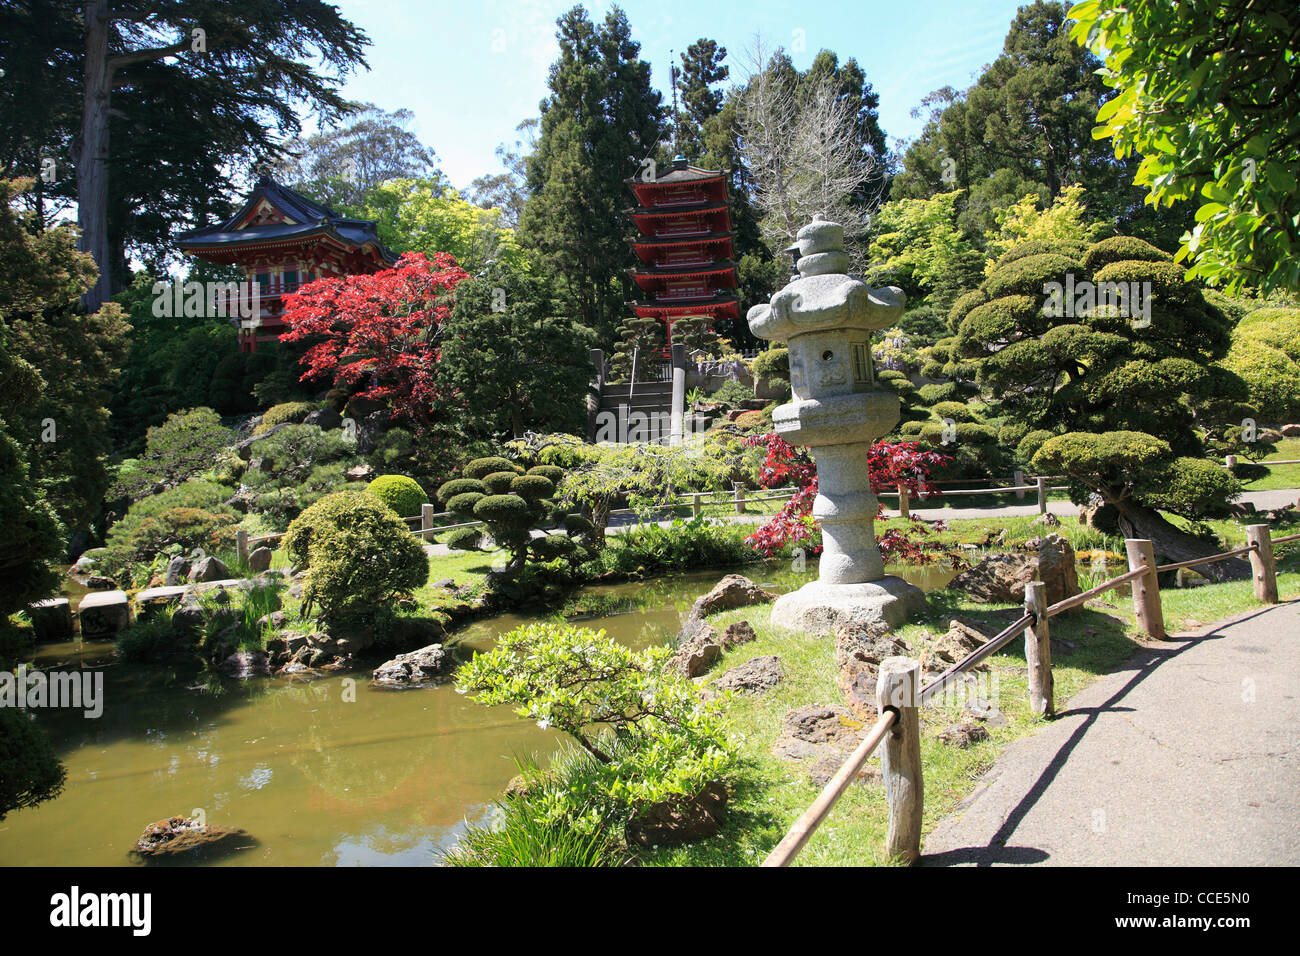 Japanese Tea Garden Golden Gate Park San Francisco California USA Stock Photo Royalty Free ...